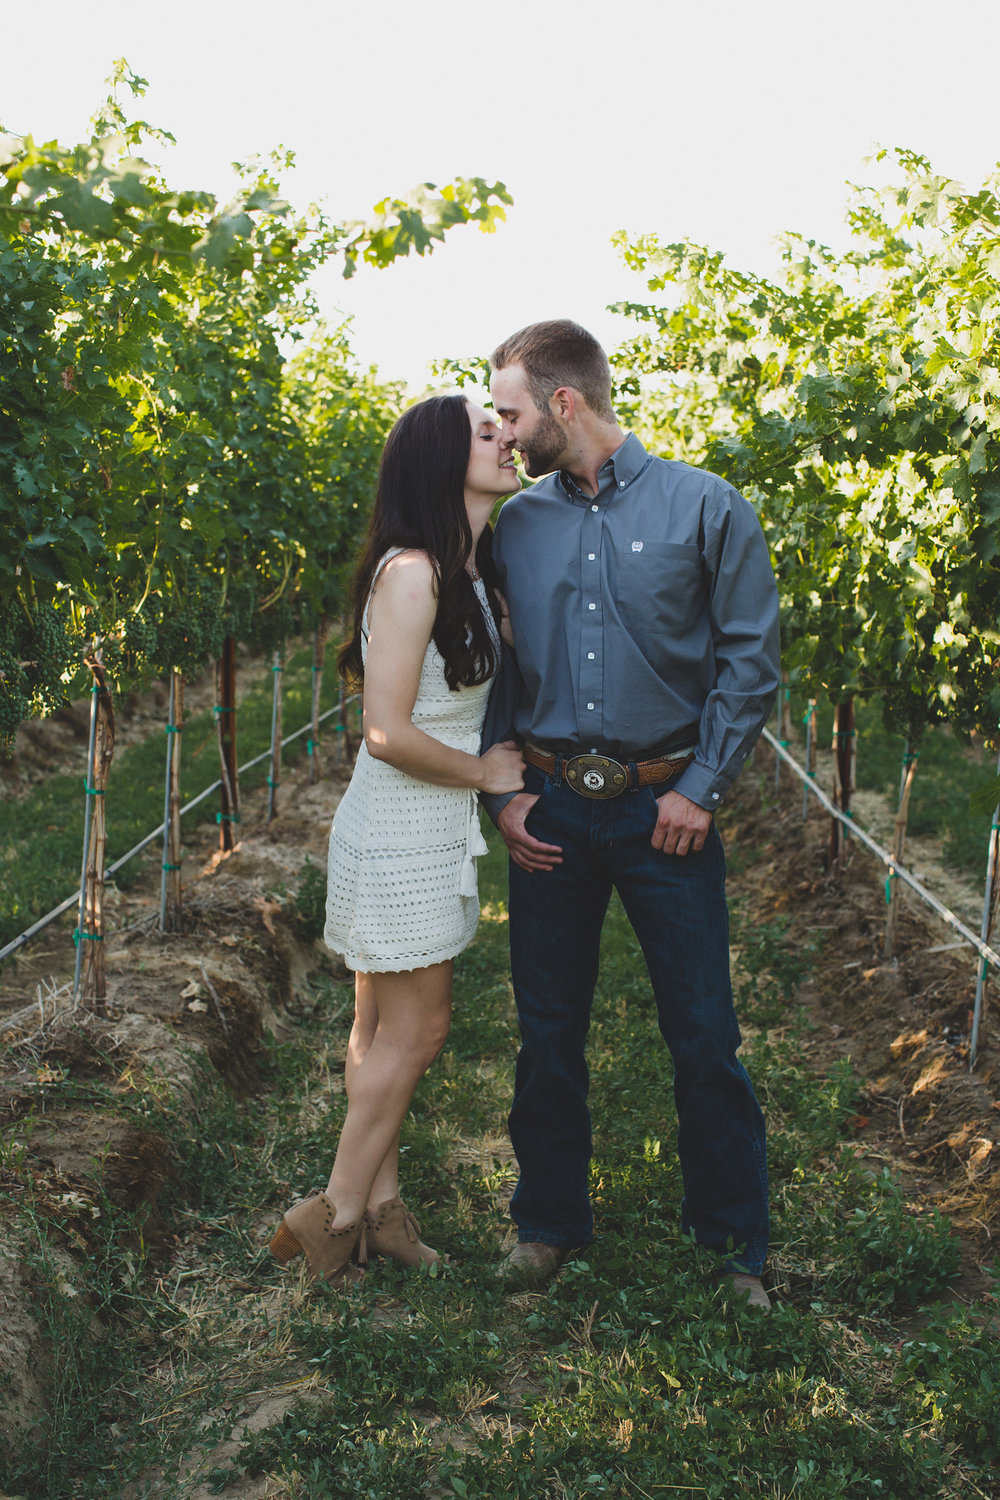 Tri Cities sunset engagement session_desert engagement_Vineyard engagement_Jordyn and Drew_Jordan Edens Photography_JEP_Grape vines_7